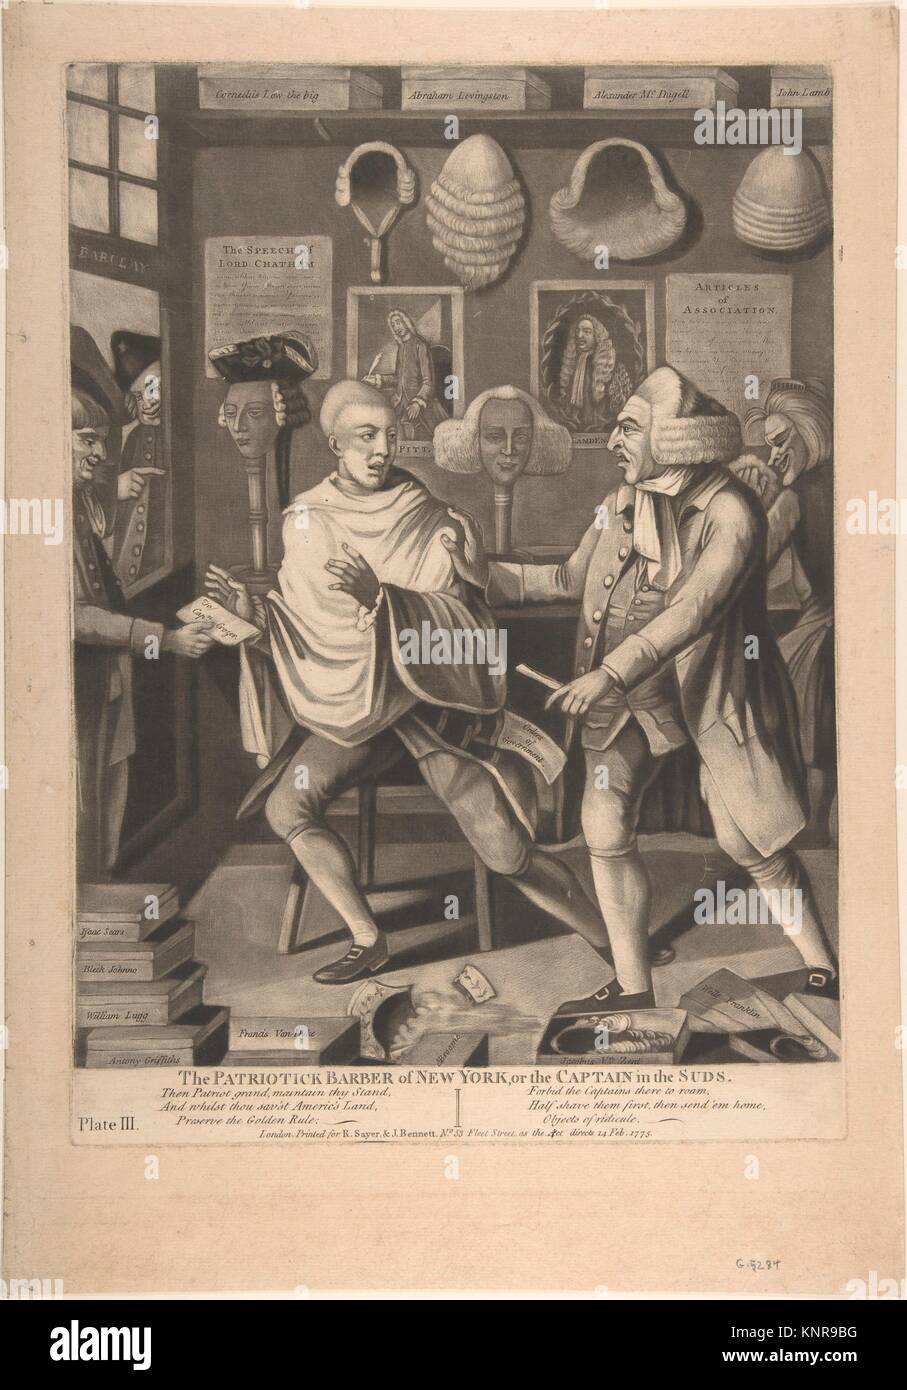 The Patriotick Barber of New York, or the Captain in the Suds. Artist: Attributed to Philip Dawe (British, 1745? - Stock Image